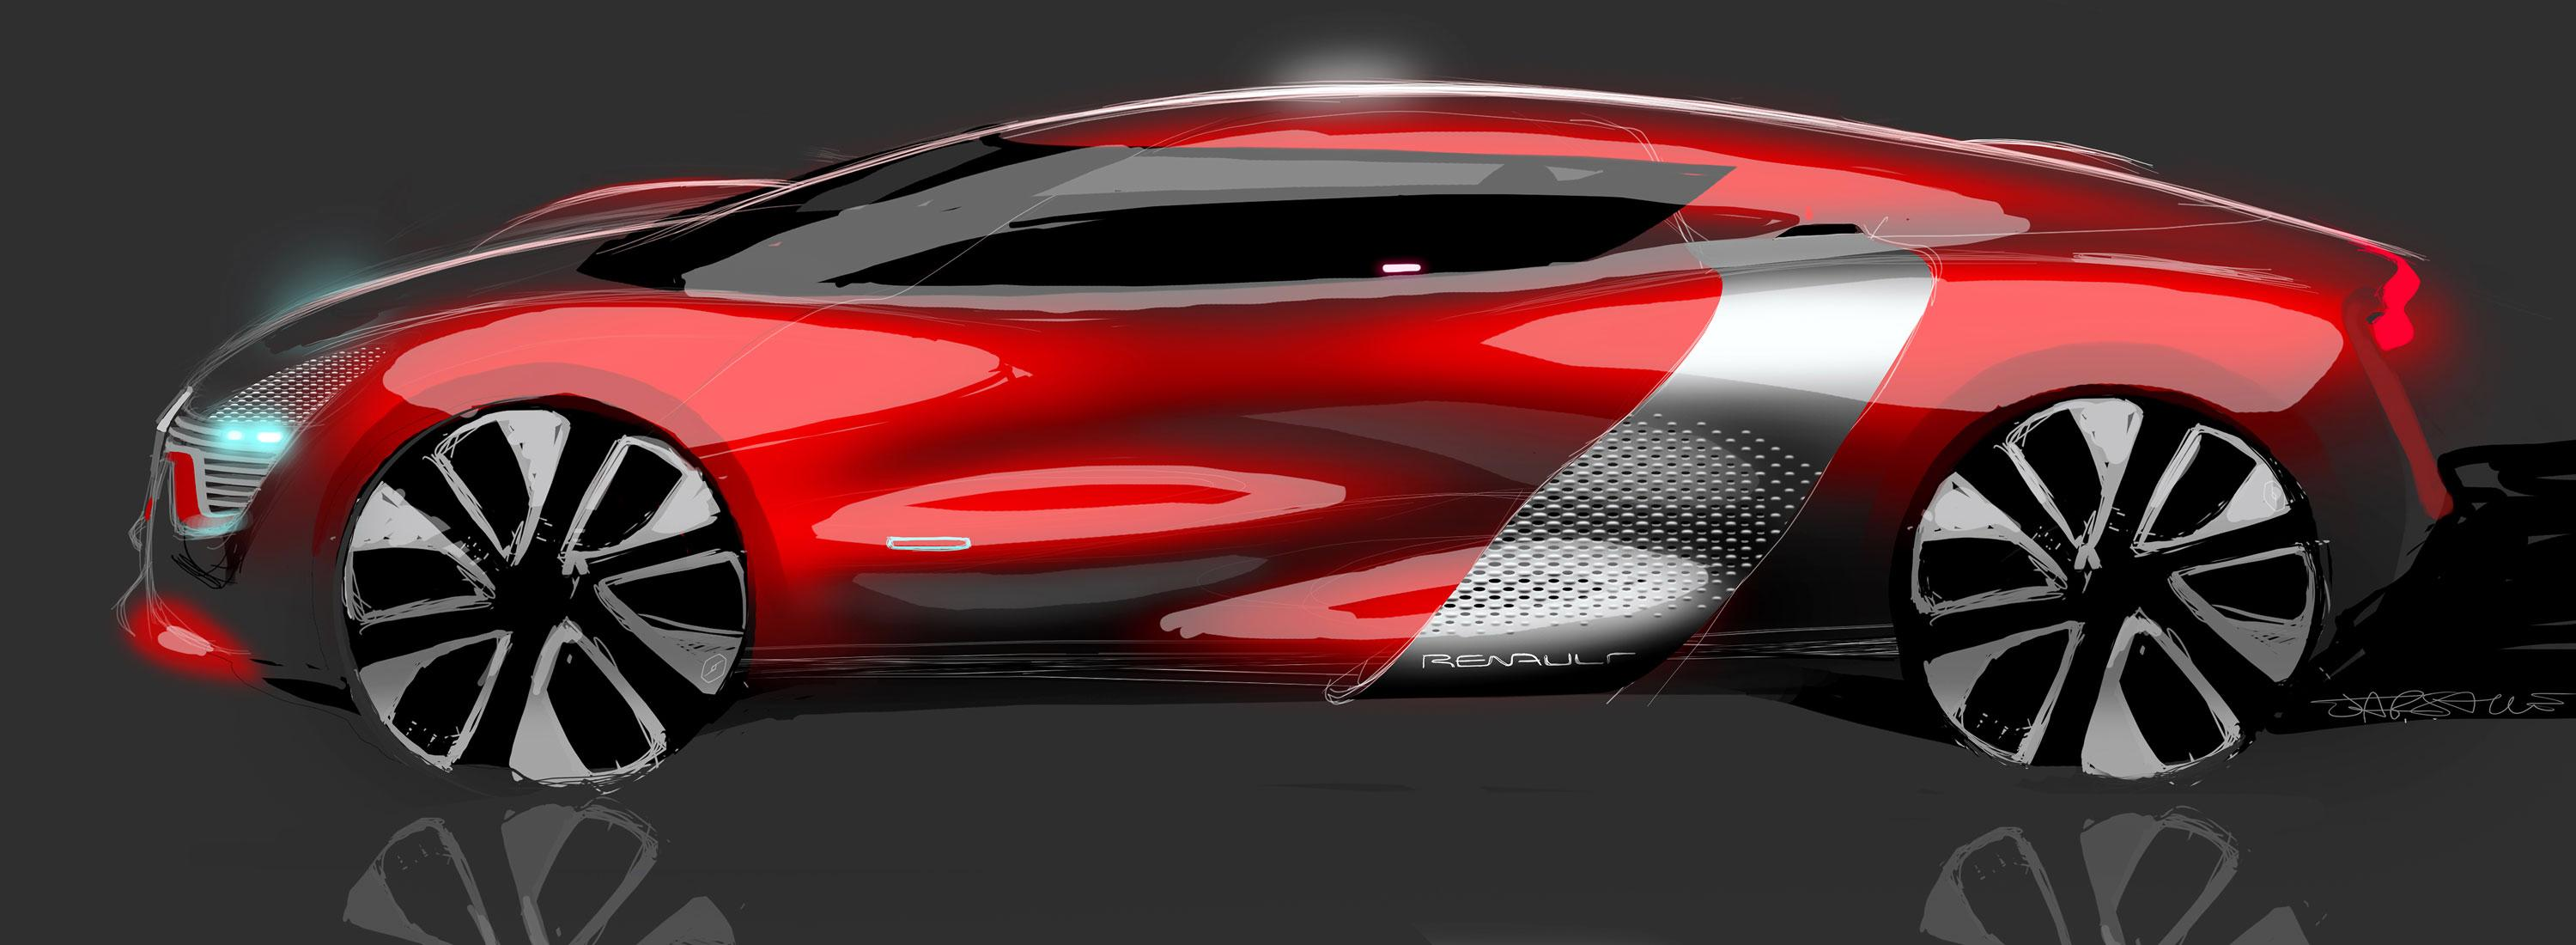 Renault Dezir - 2010 - sketch side design